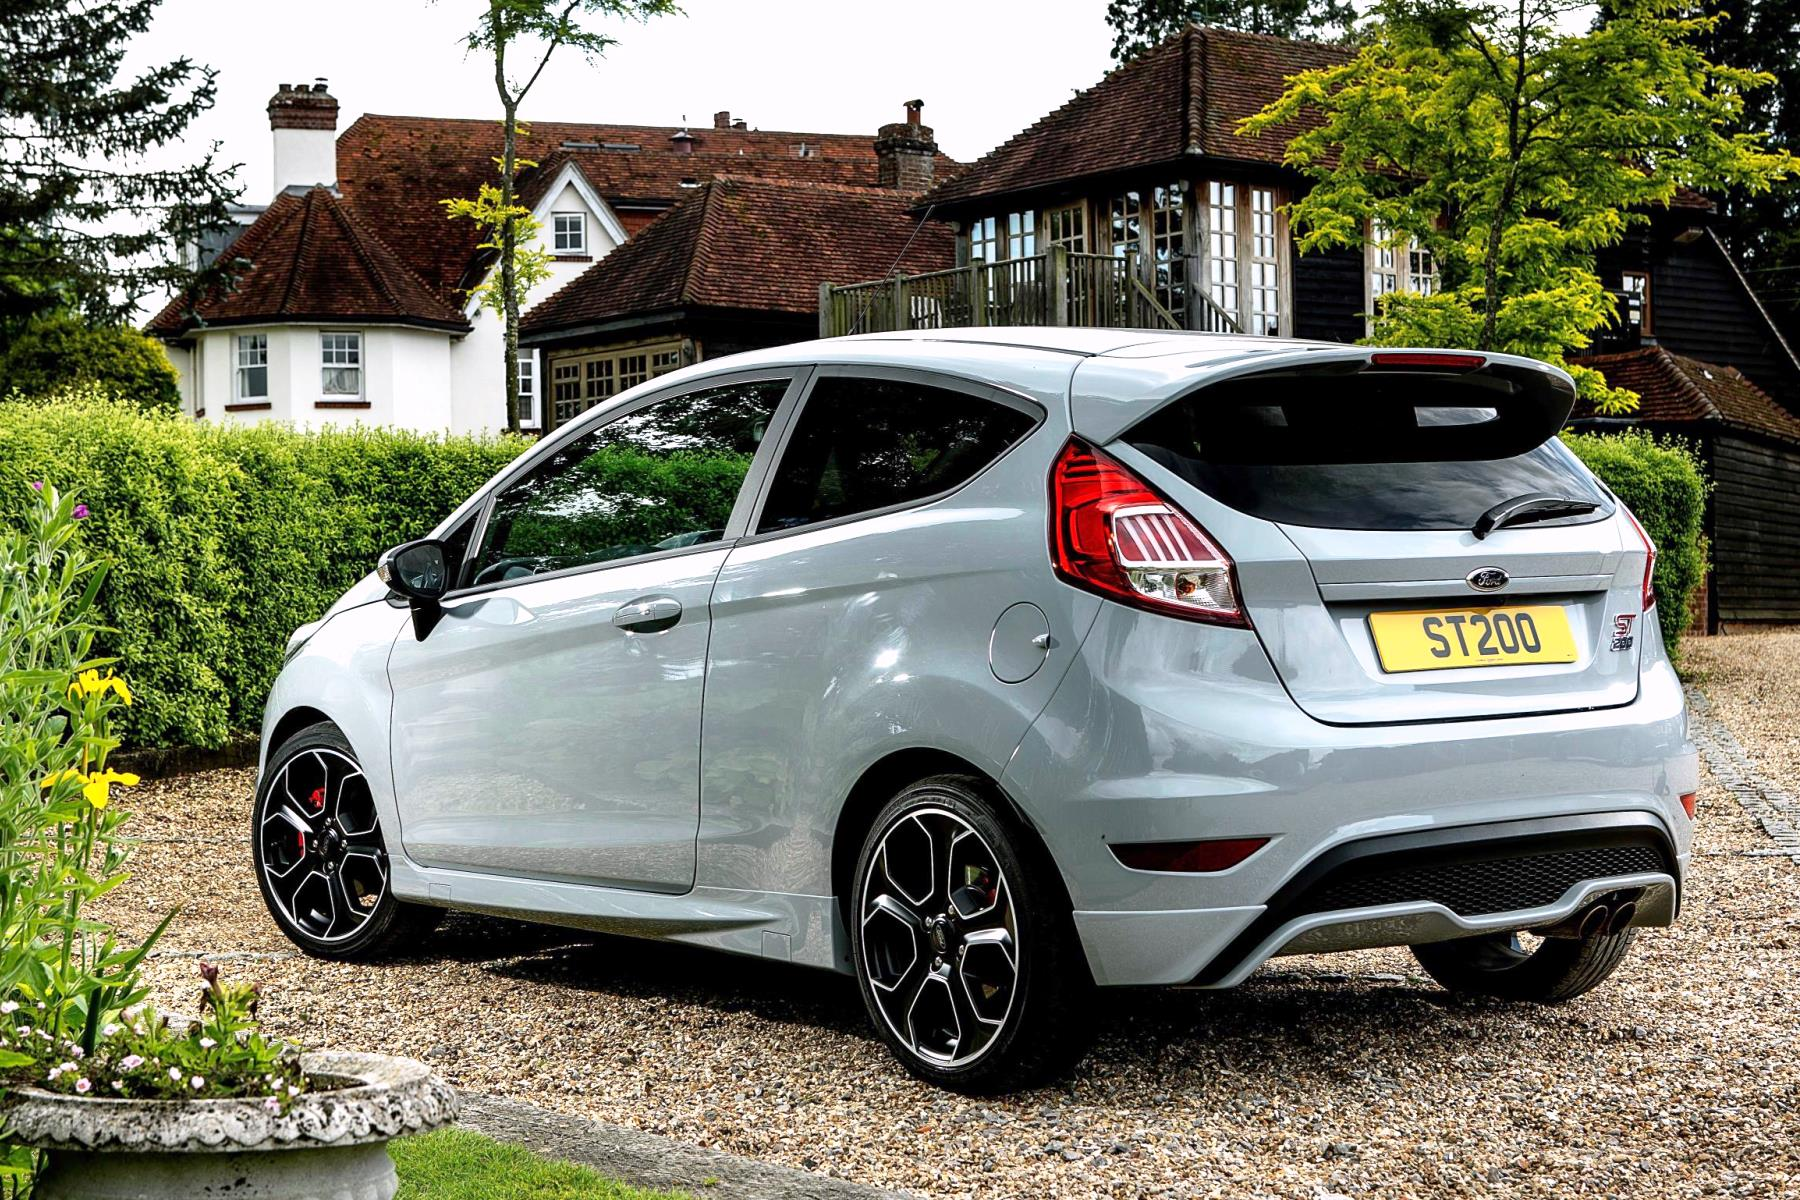 ford fiesta st200 review the best dash cams a. Black Bedroom Furniture Sets. Home Design Ideas